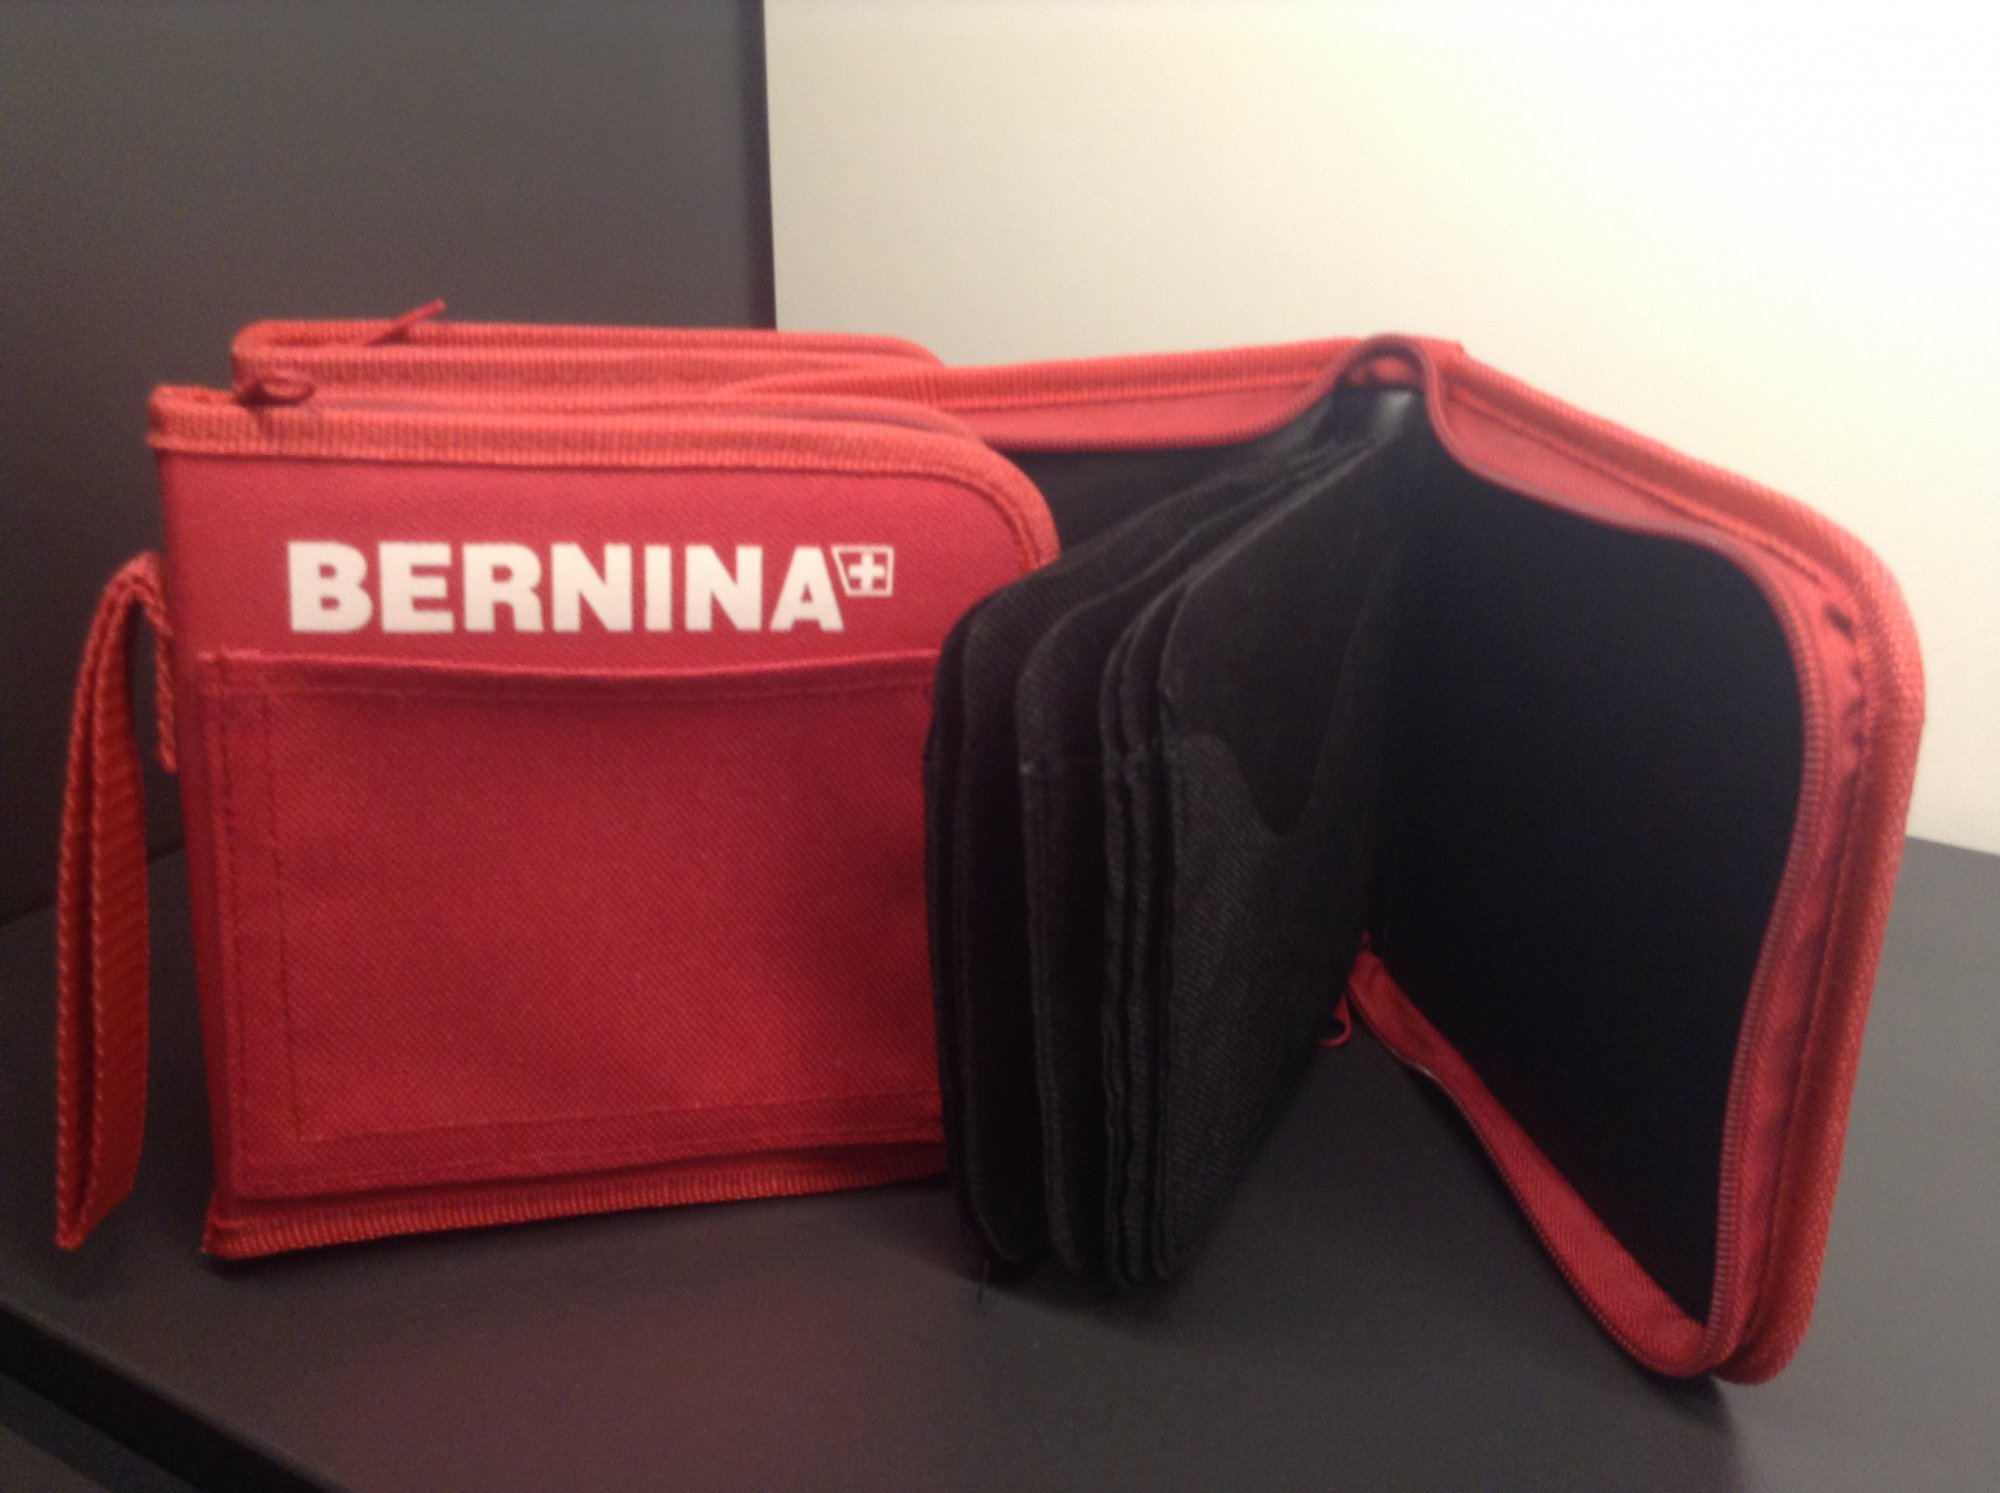 Bernina CD case